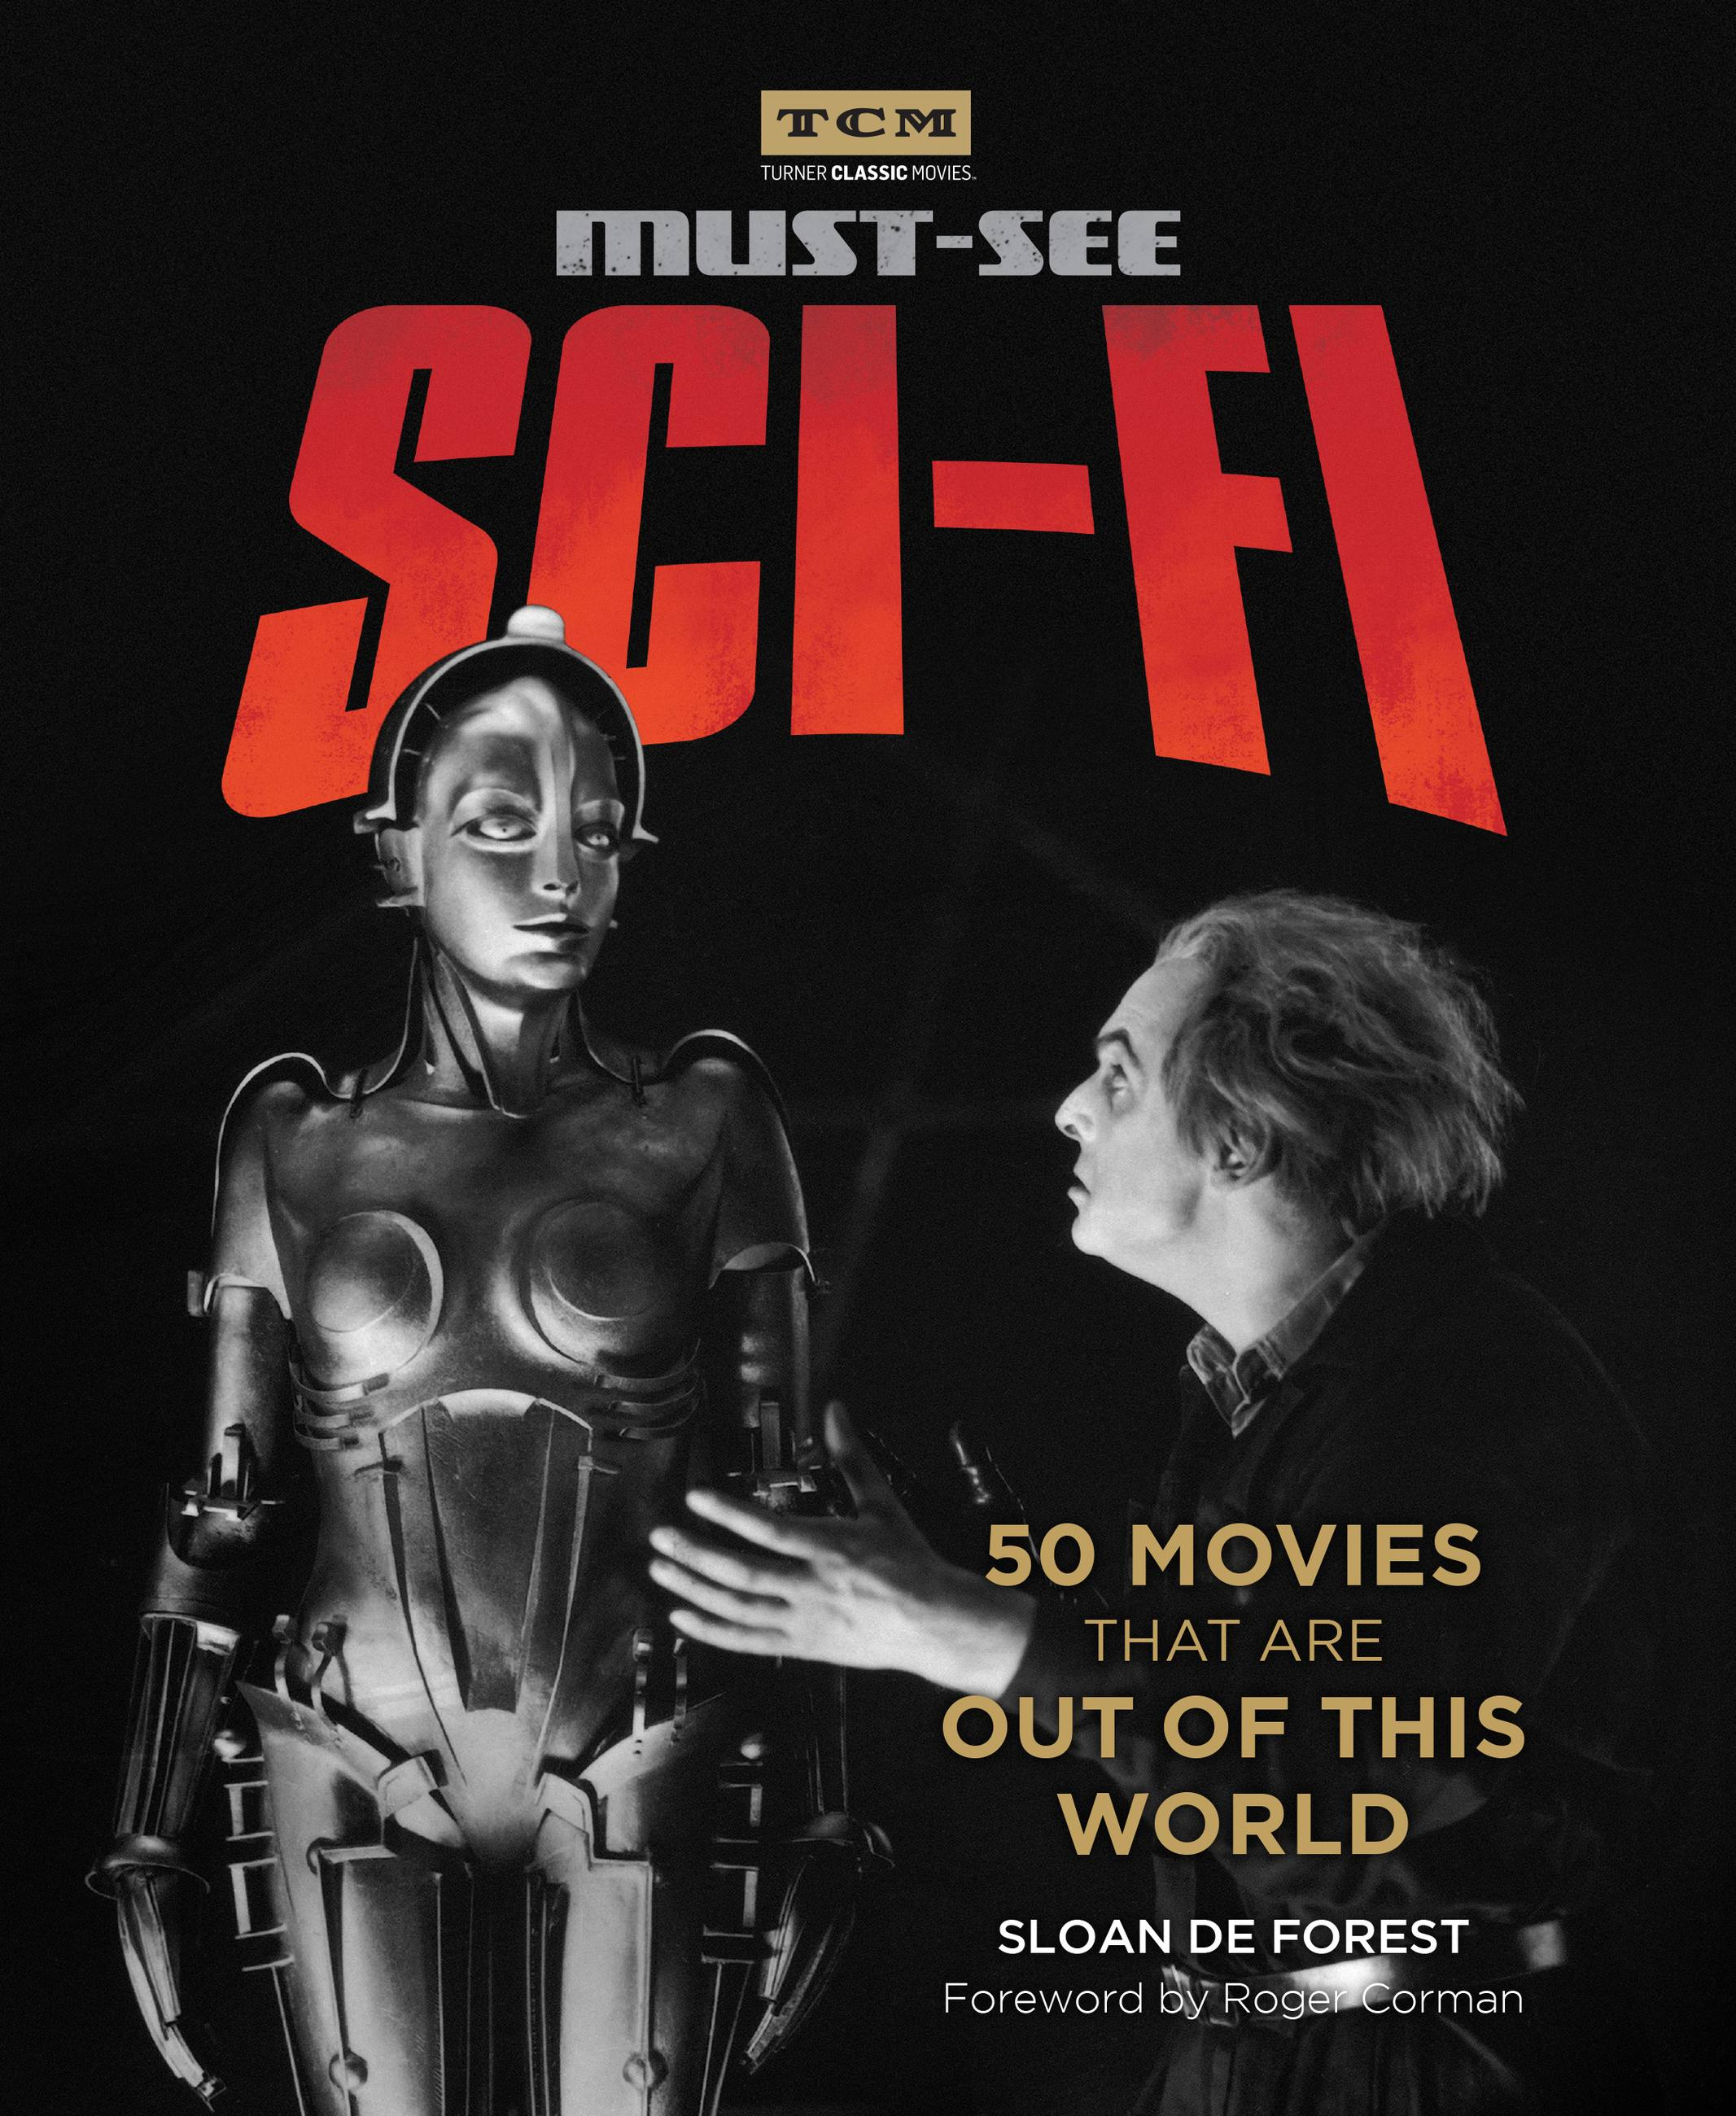 Turner Classic Movies: Must-See Sci-fi